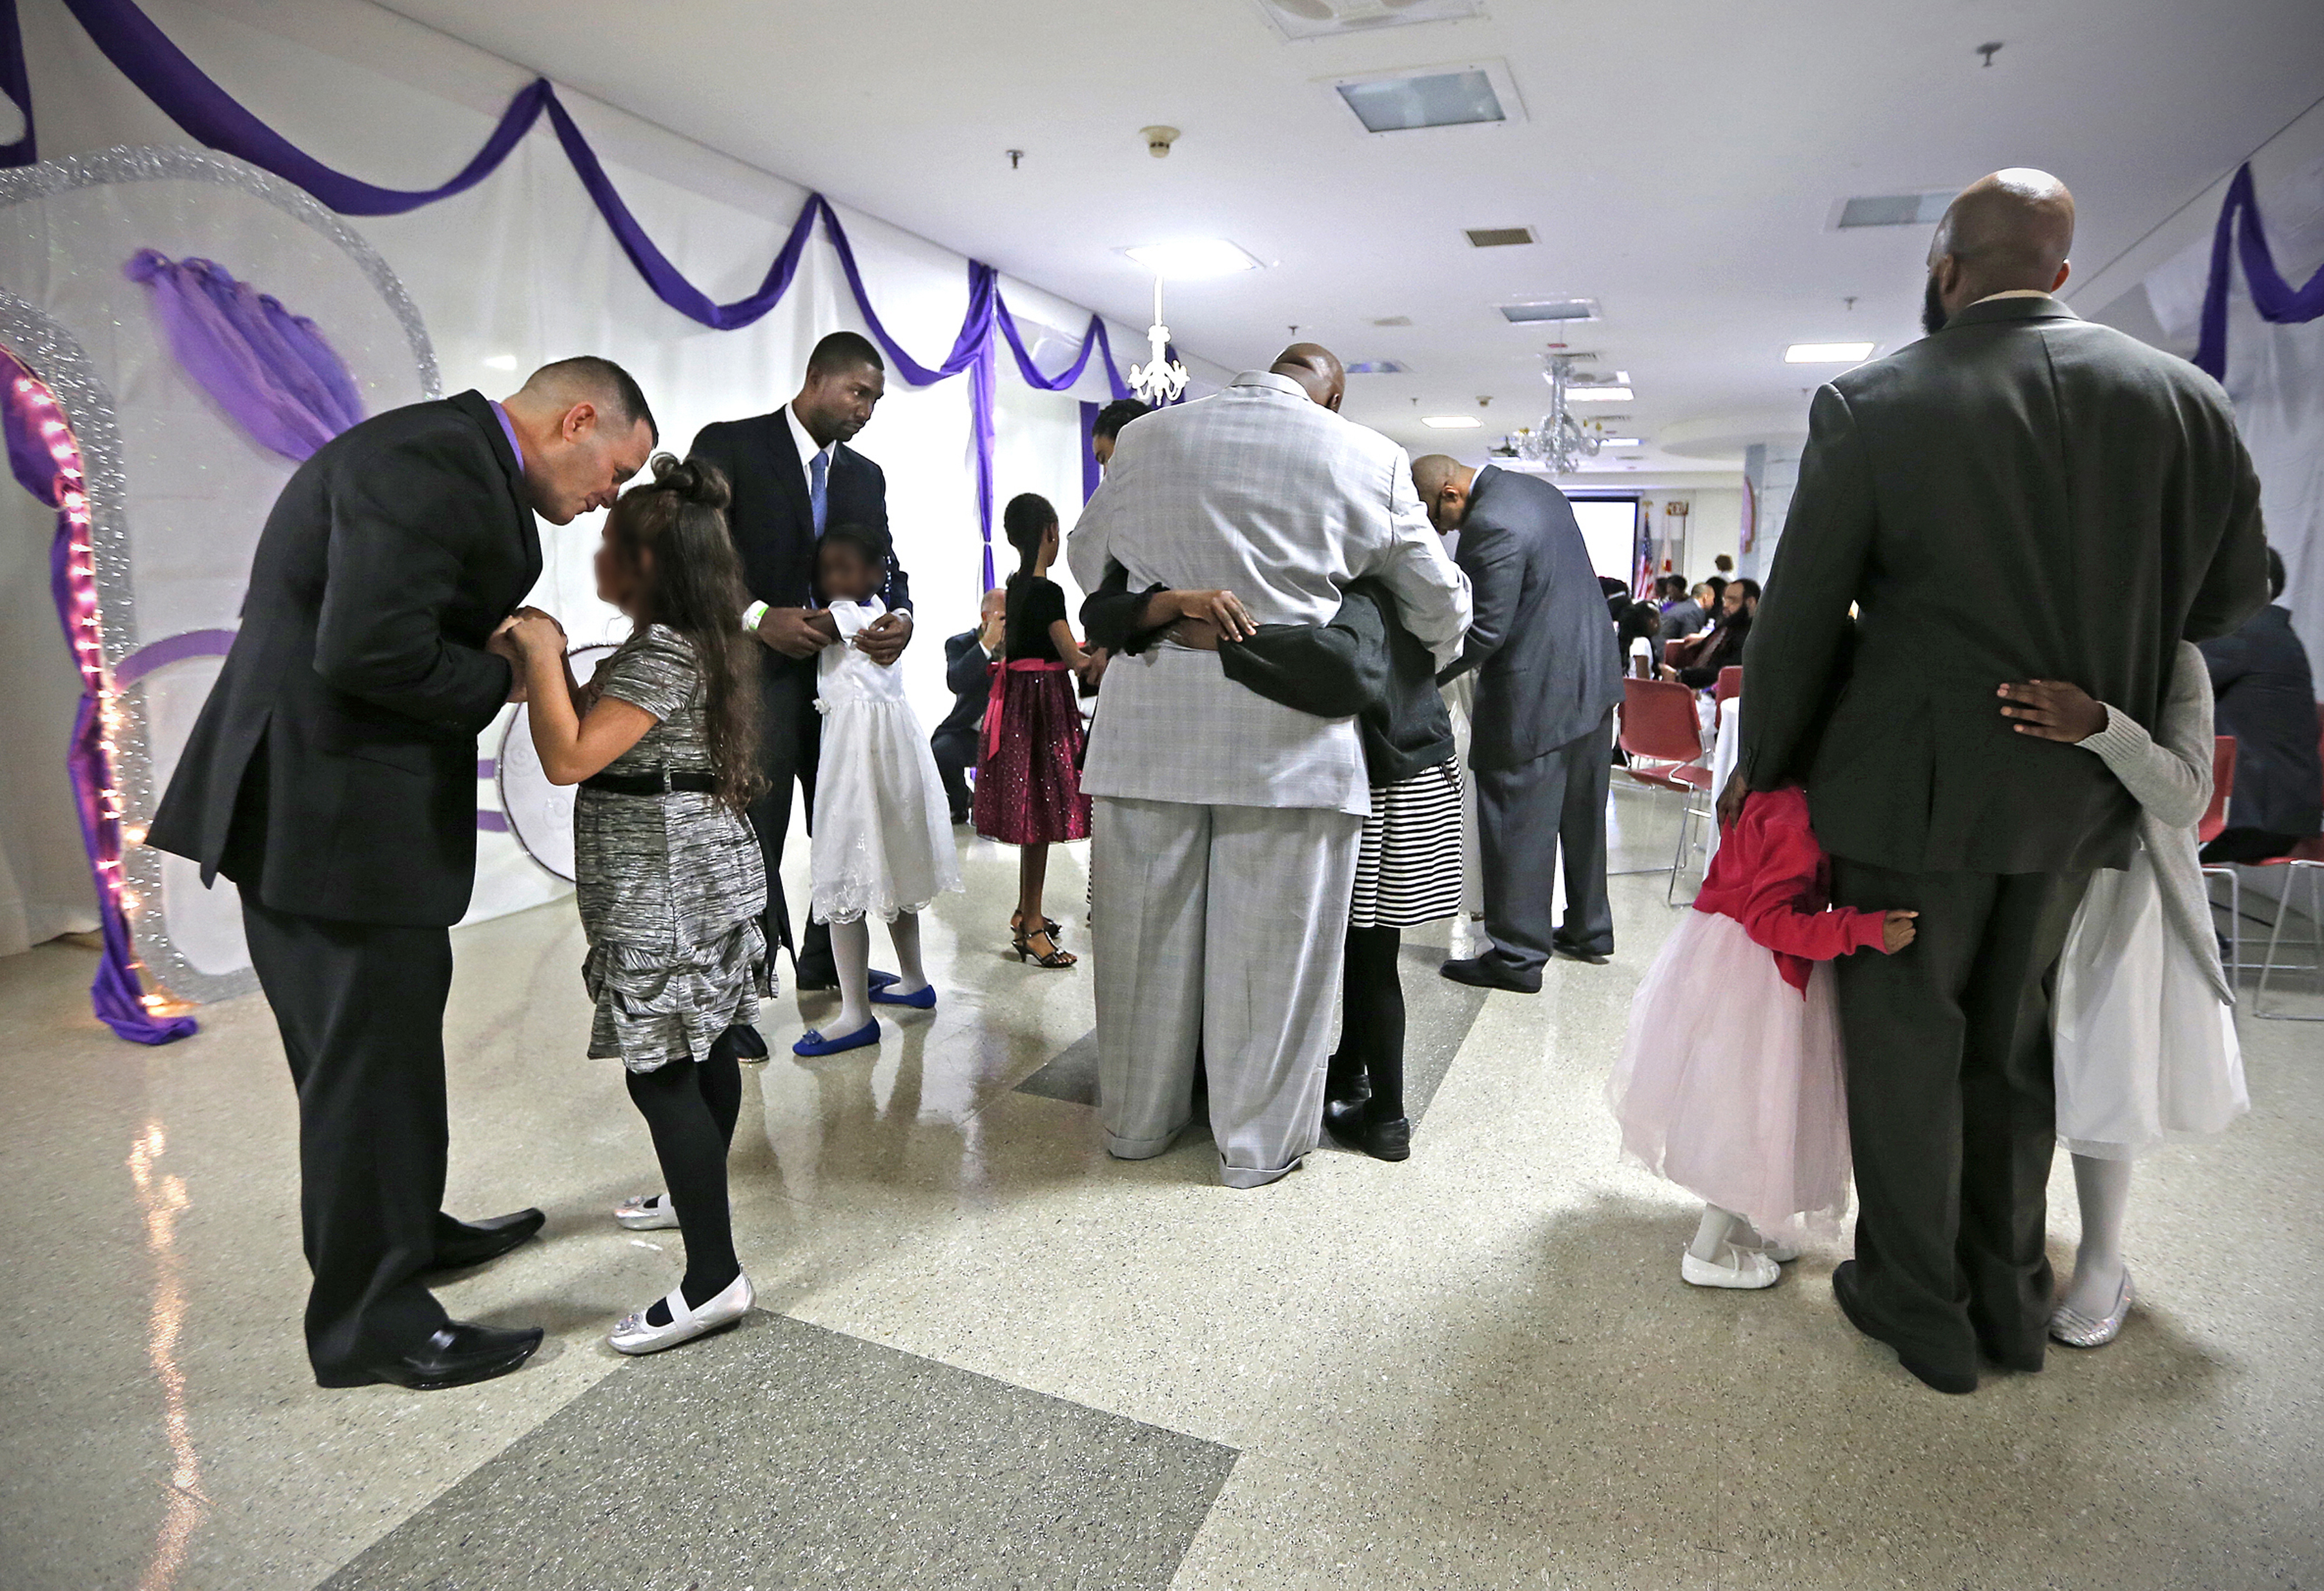 federal prison in miami hosts dance for inmates and federal prison in miami hosts dance for inmates and their daughters